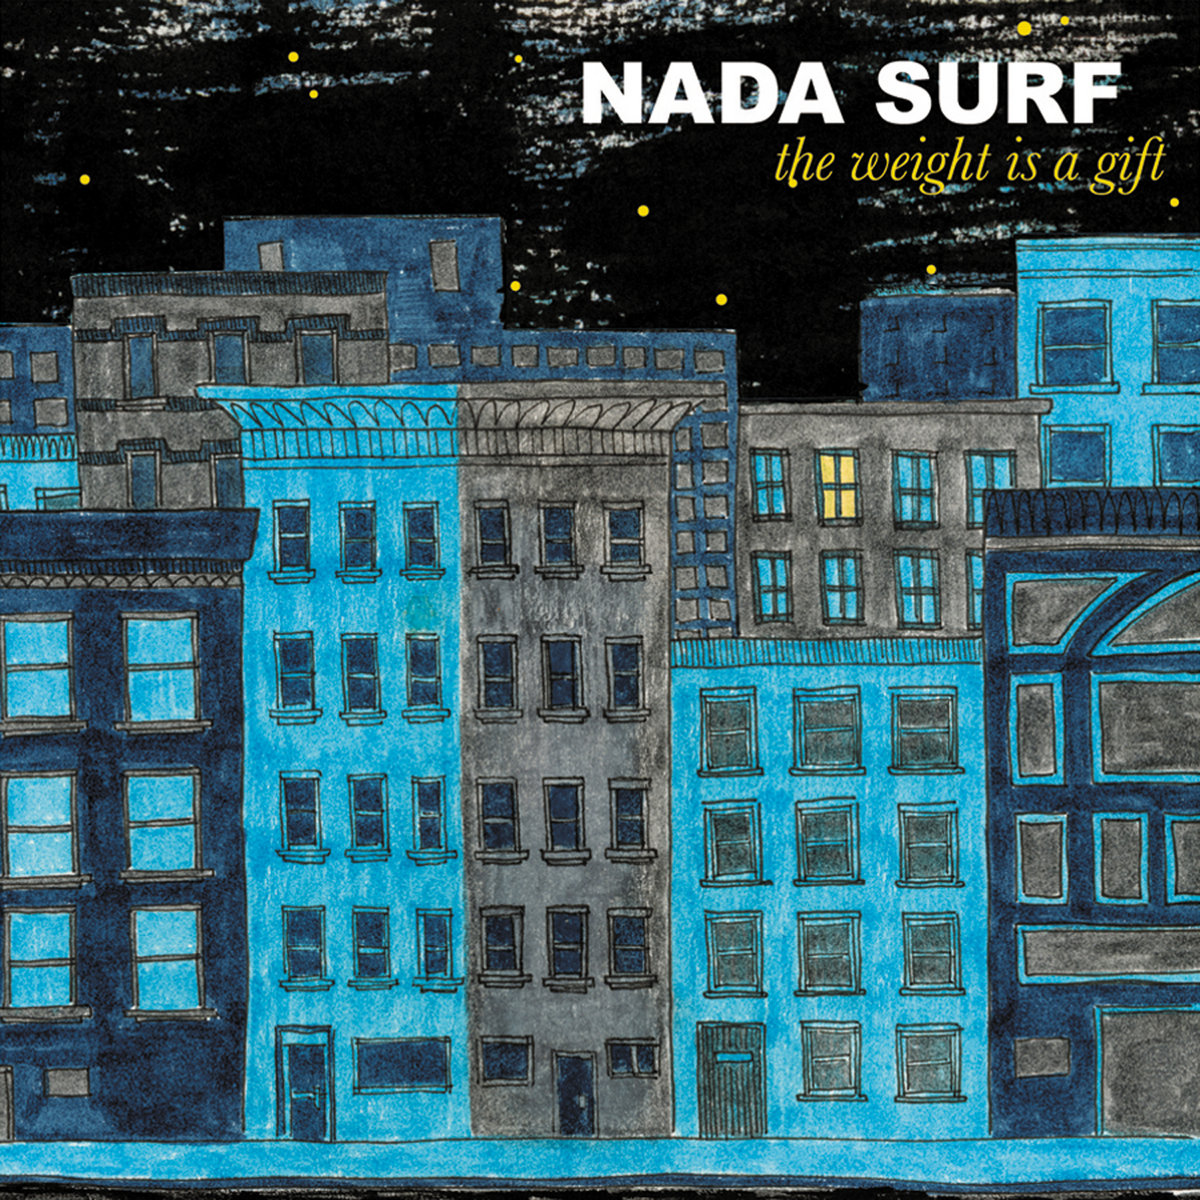 Nada Surf, The Weight Is a Gift